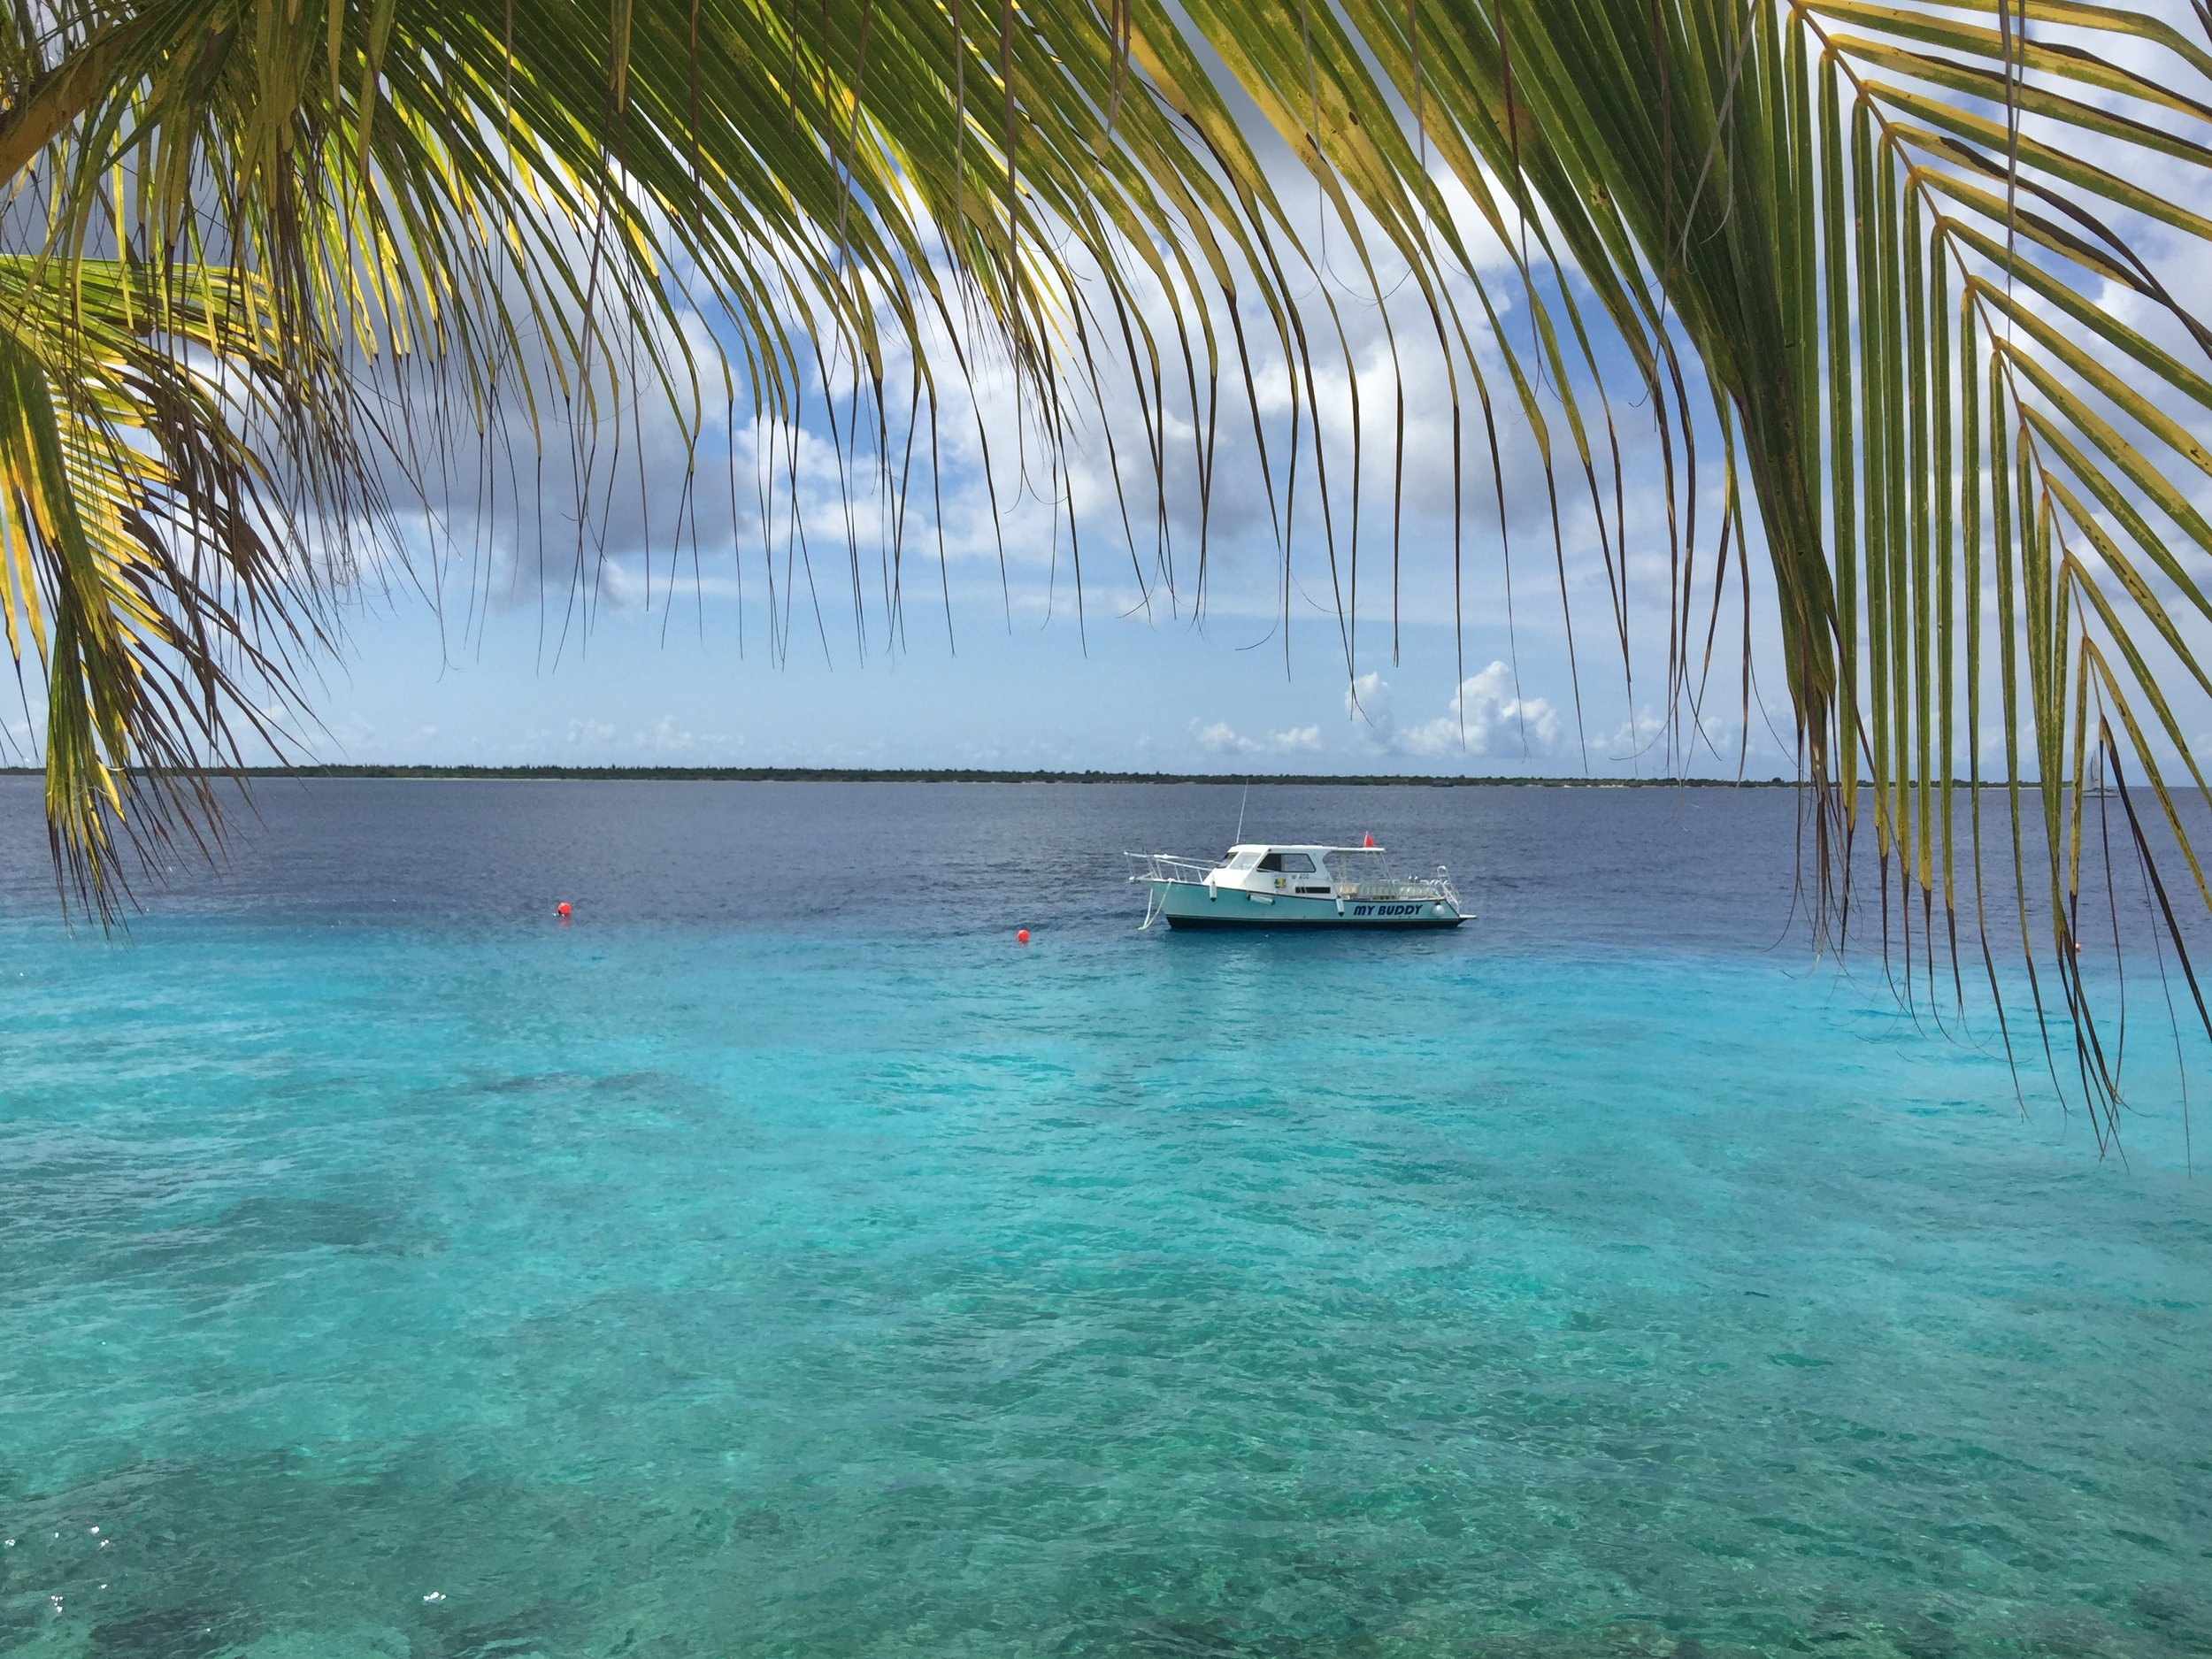 Bonaire is the perfect place to get your scuba diving certification.